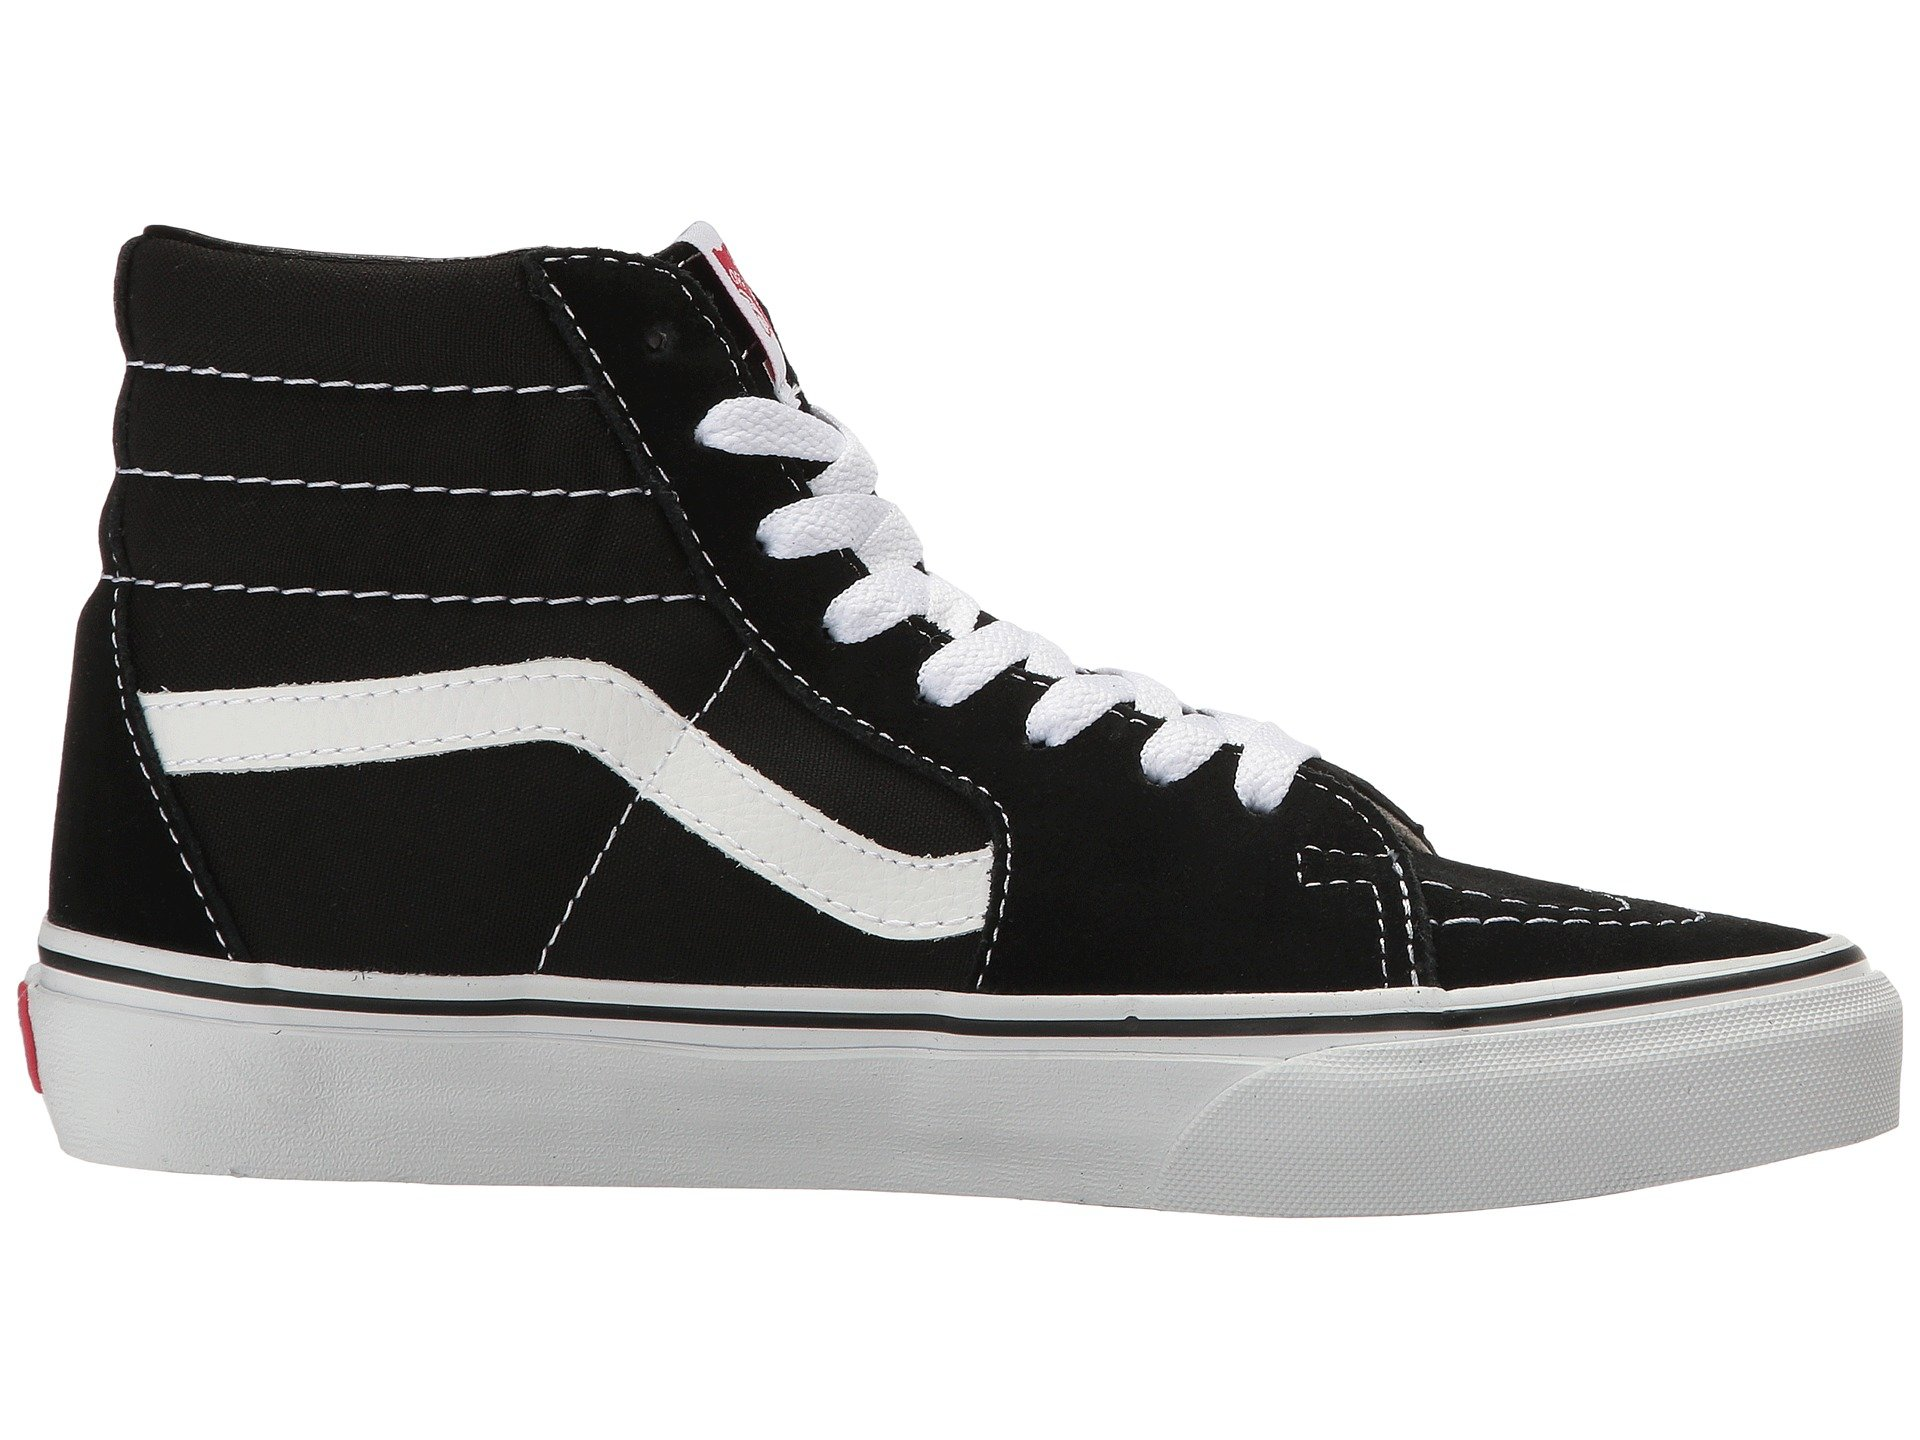 Vans Sk8-Hi Black White Skate VN-0D5IB8C Mens US 5 by Vans